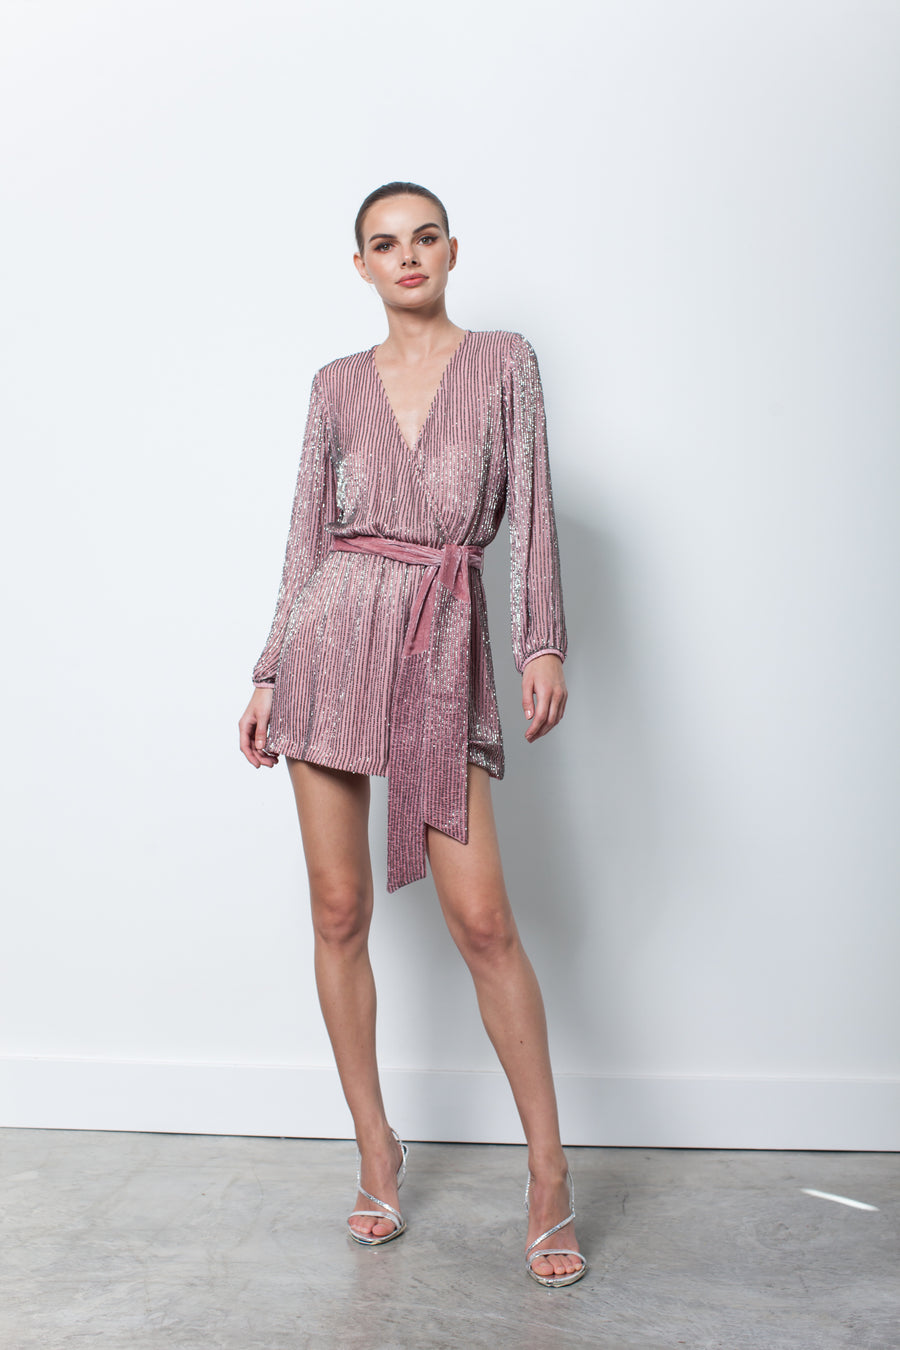 Karina Grimaldi Garda Beaded Dress